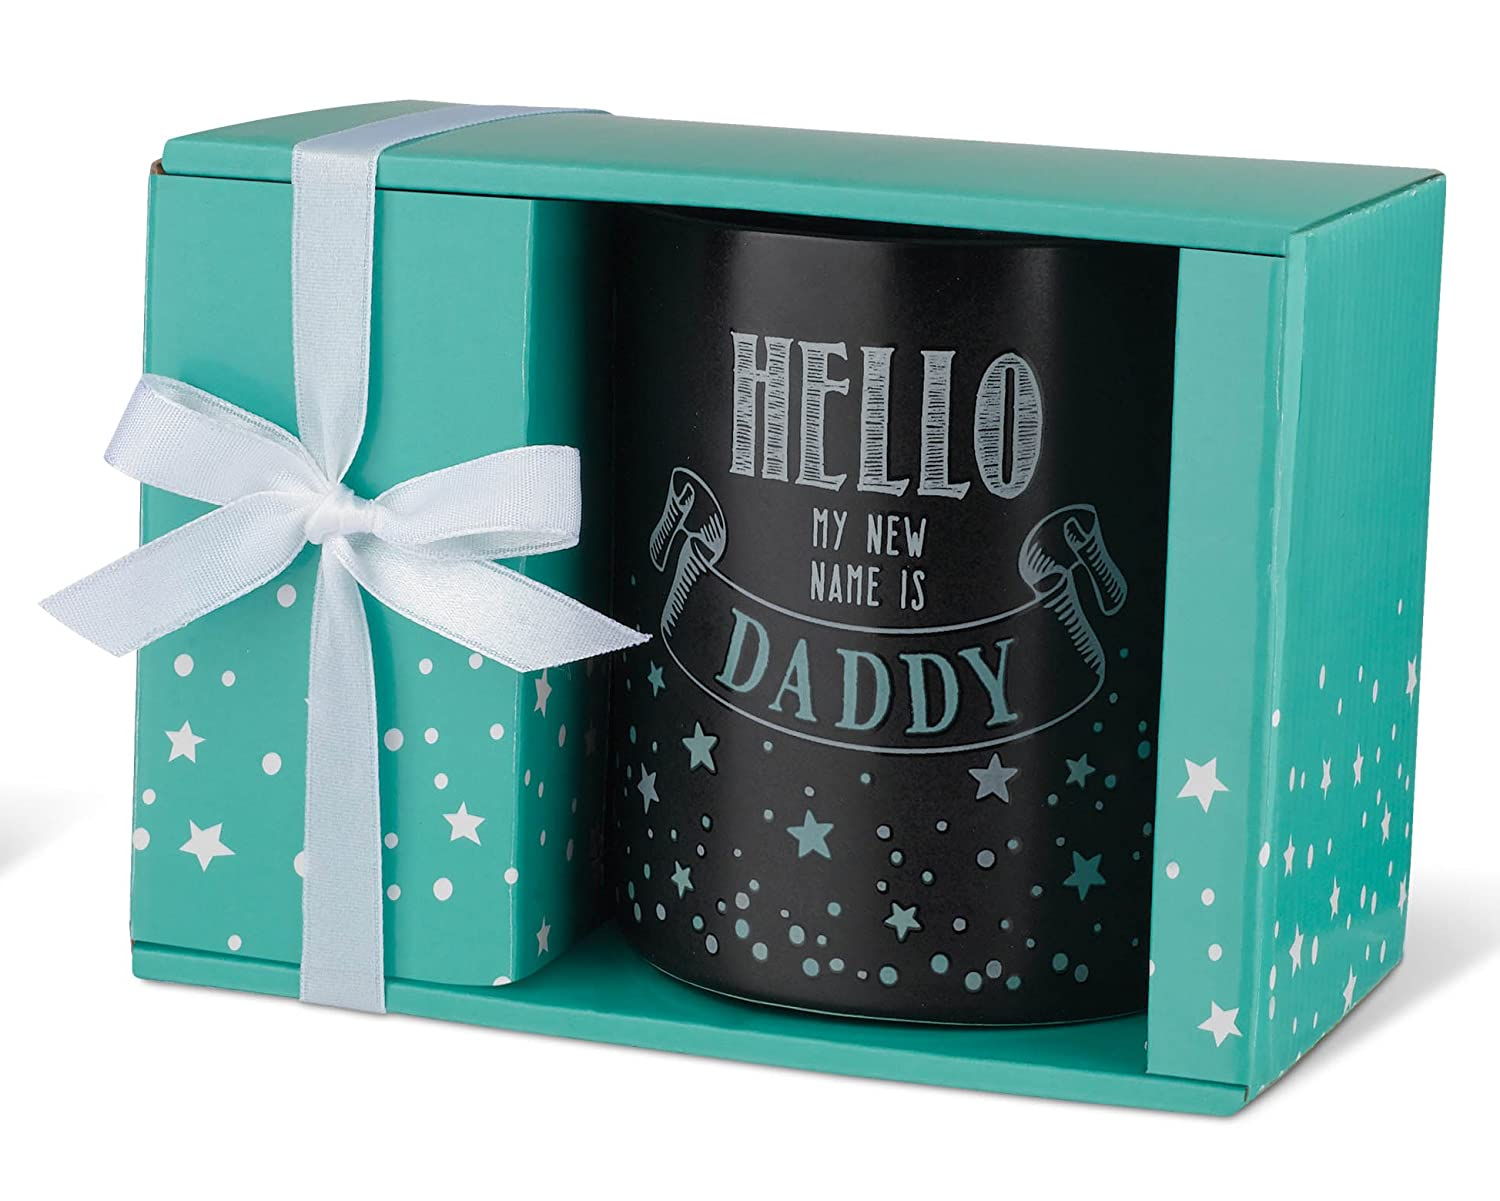 Made By Hands 60352 12-ounce Mug Black and Teal Ceramic with Gift Box 12 oz, Hello My NEW Name Is Daddy